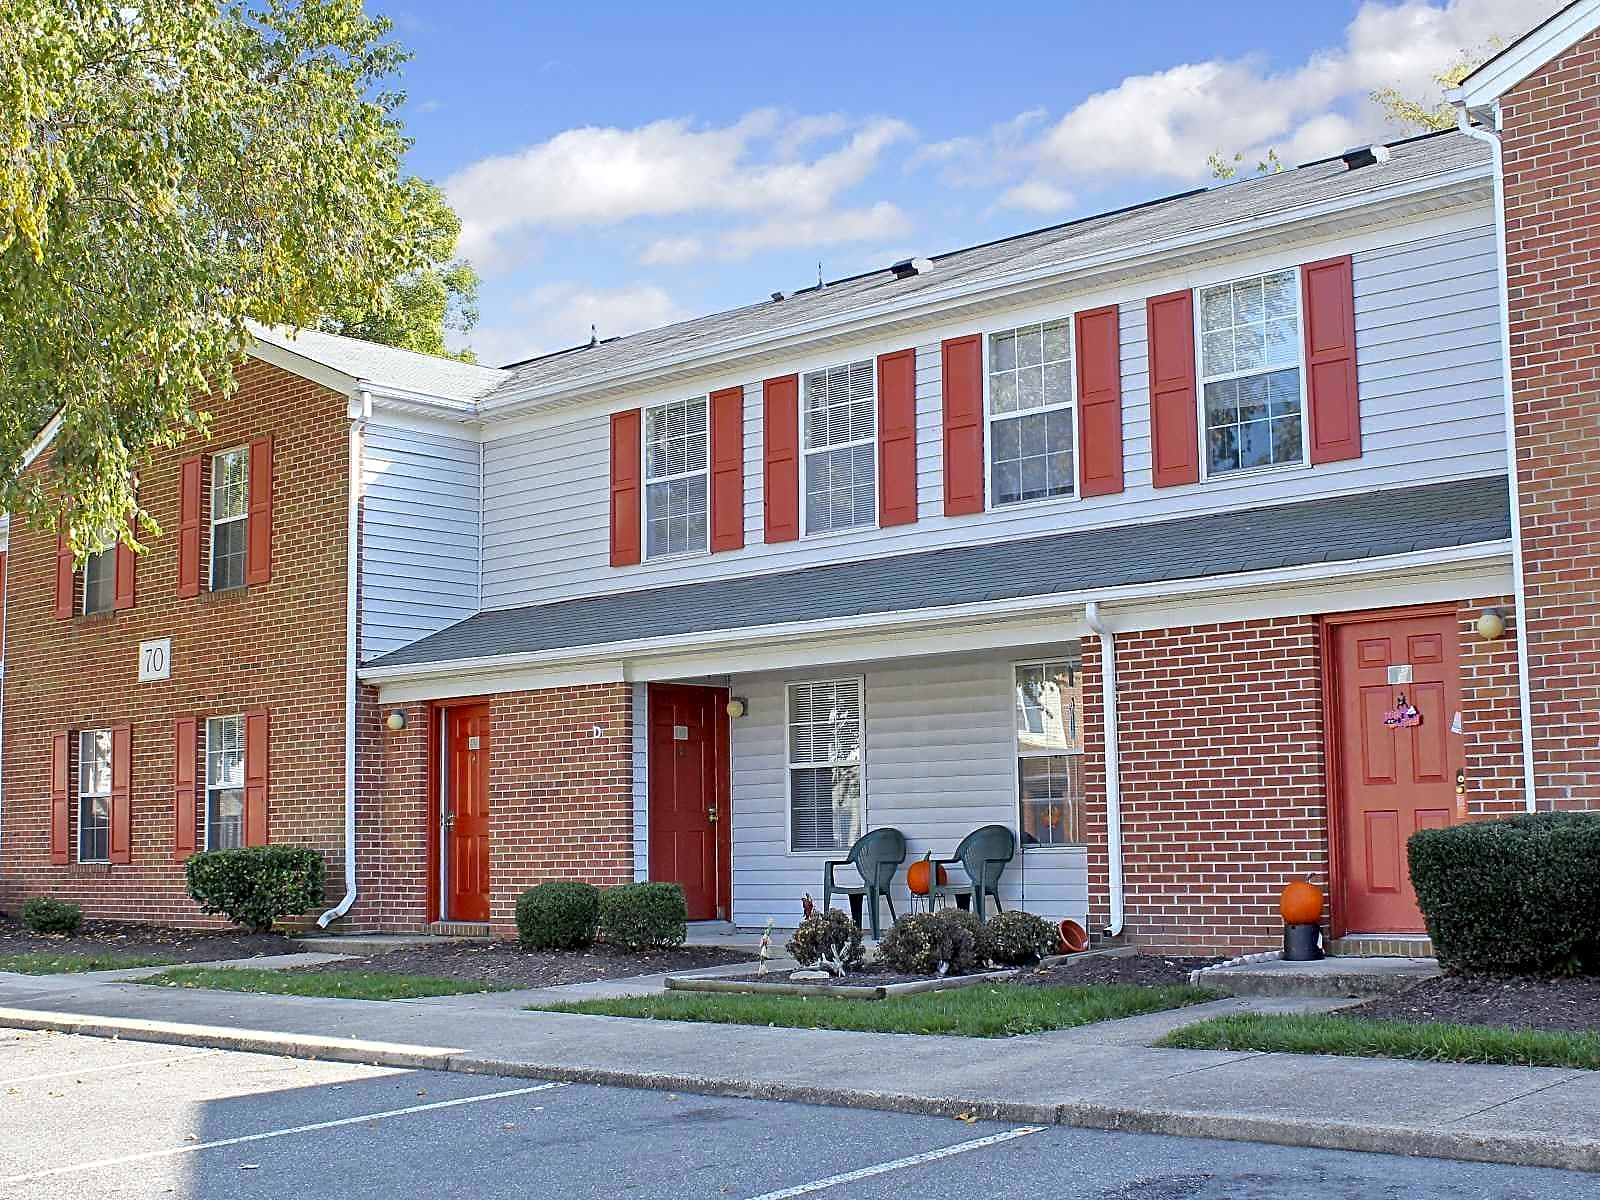 3 Bedroom Houses For Rent In Newport News Va 6 Rental Homes Welcome Daily Press Classified